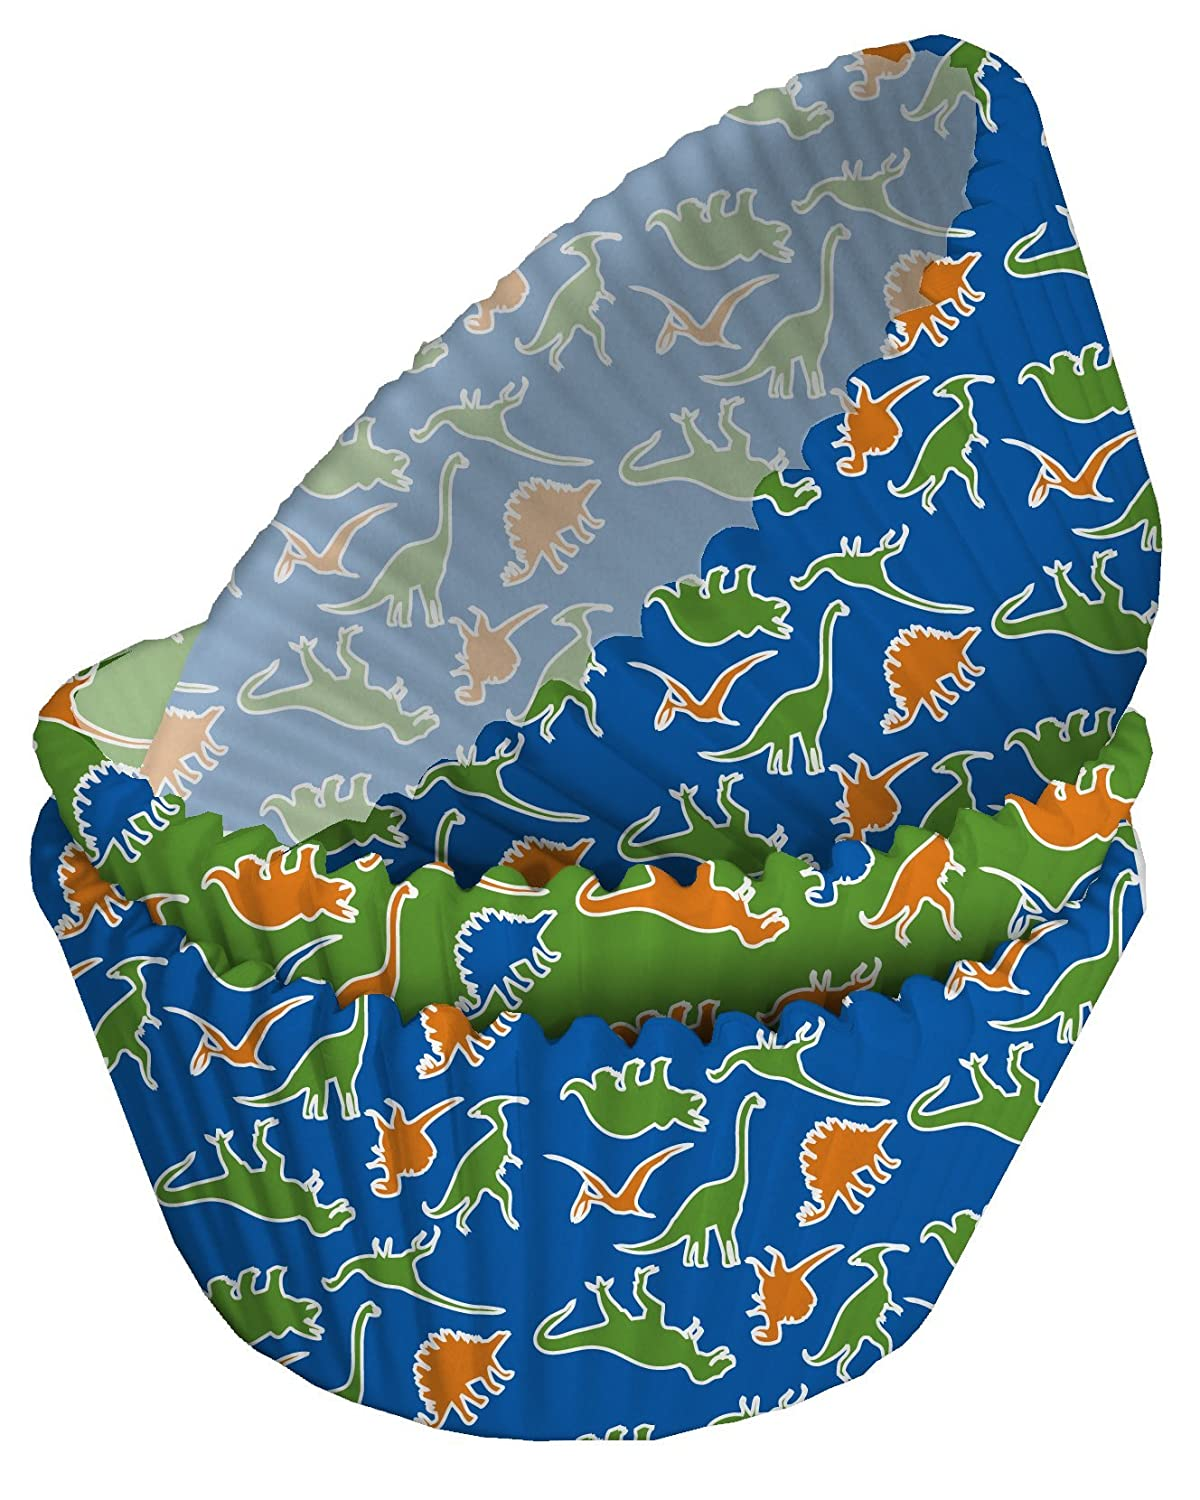 75 x Dinosaur Patterned Cupcake Cases Creative Converting